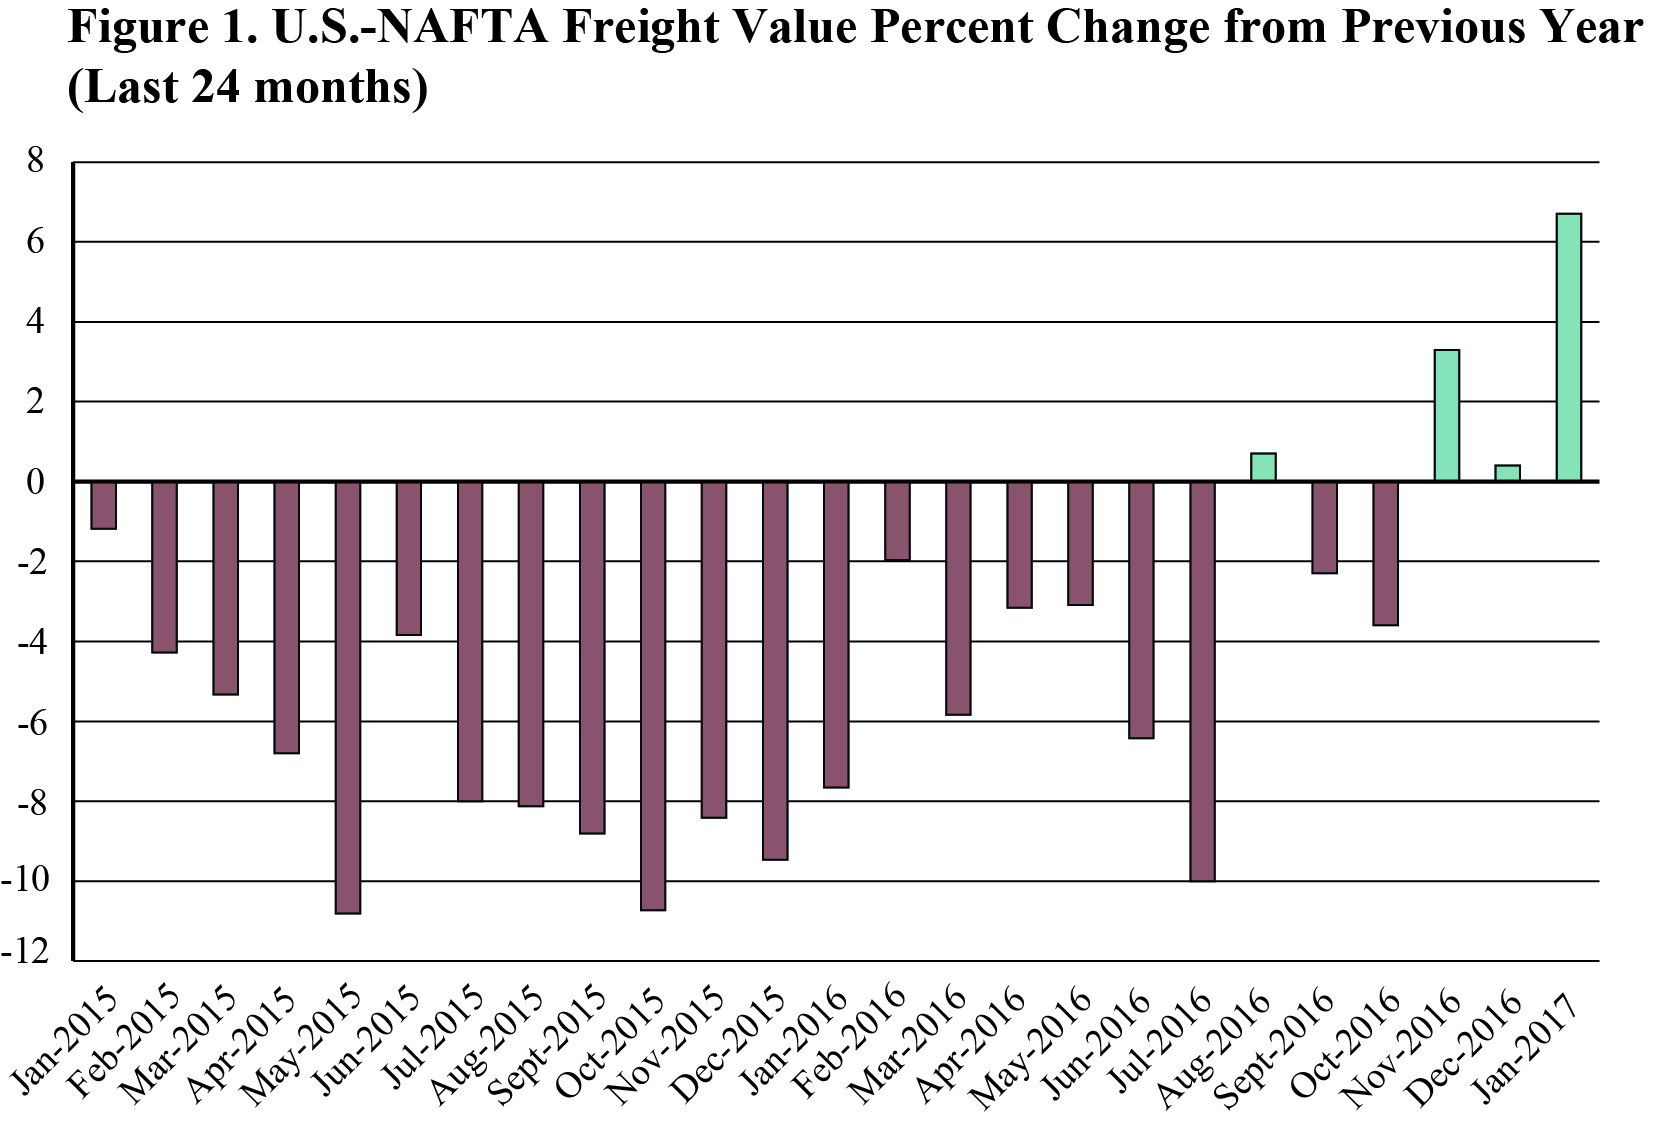 Cross-Border Freight Value Up for Third Straight Month